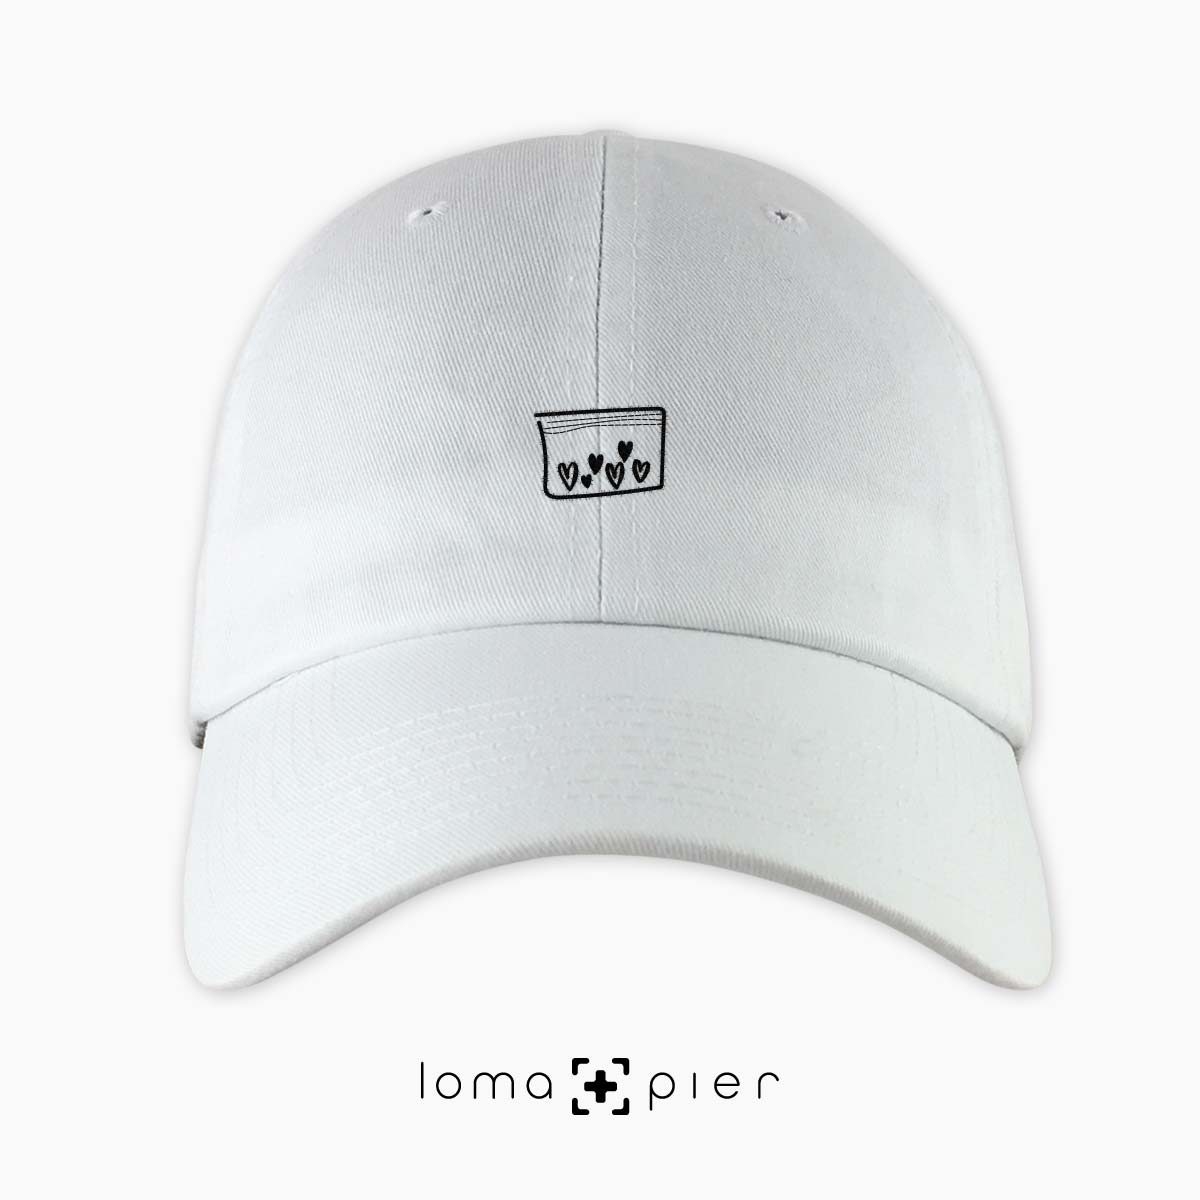 LOVE DRUG icon embroidered on a white unstructured dad hat with black thread by loma+pier hat store made in the USA